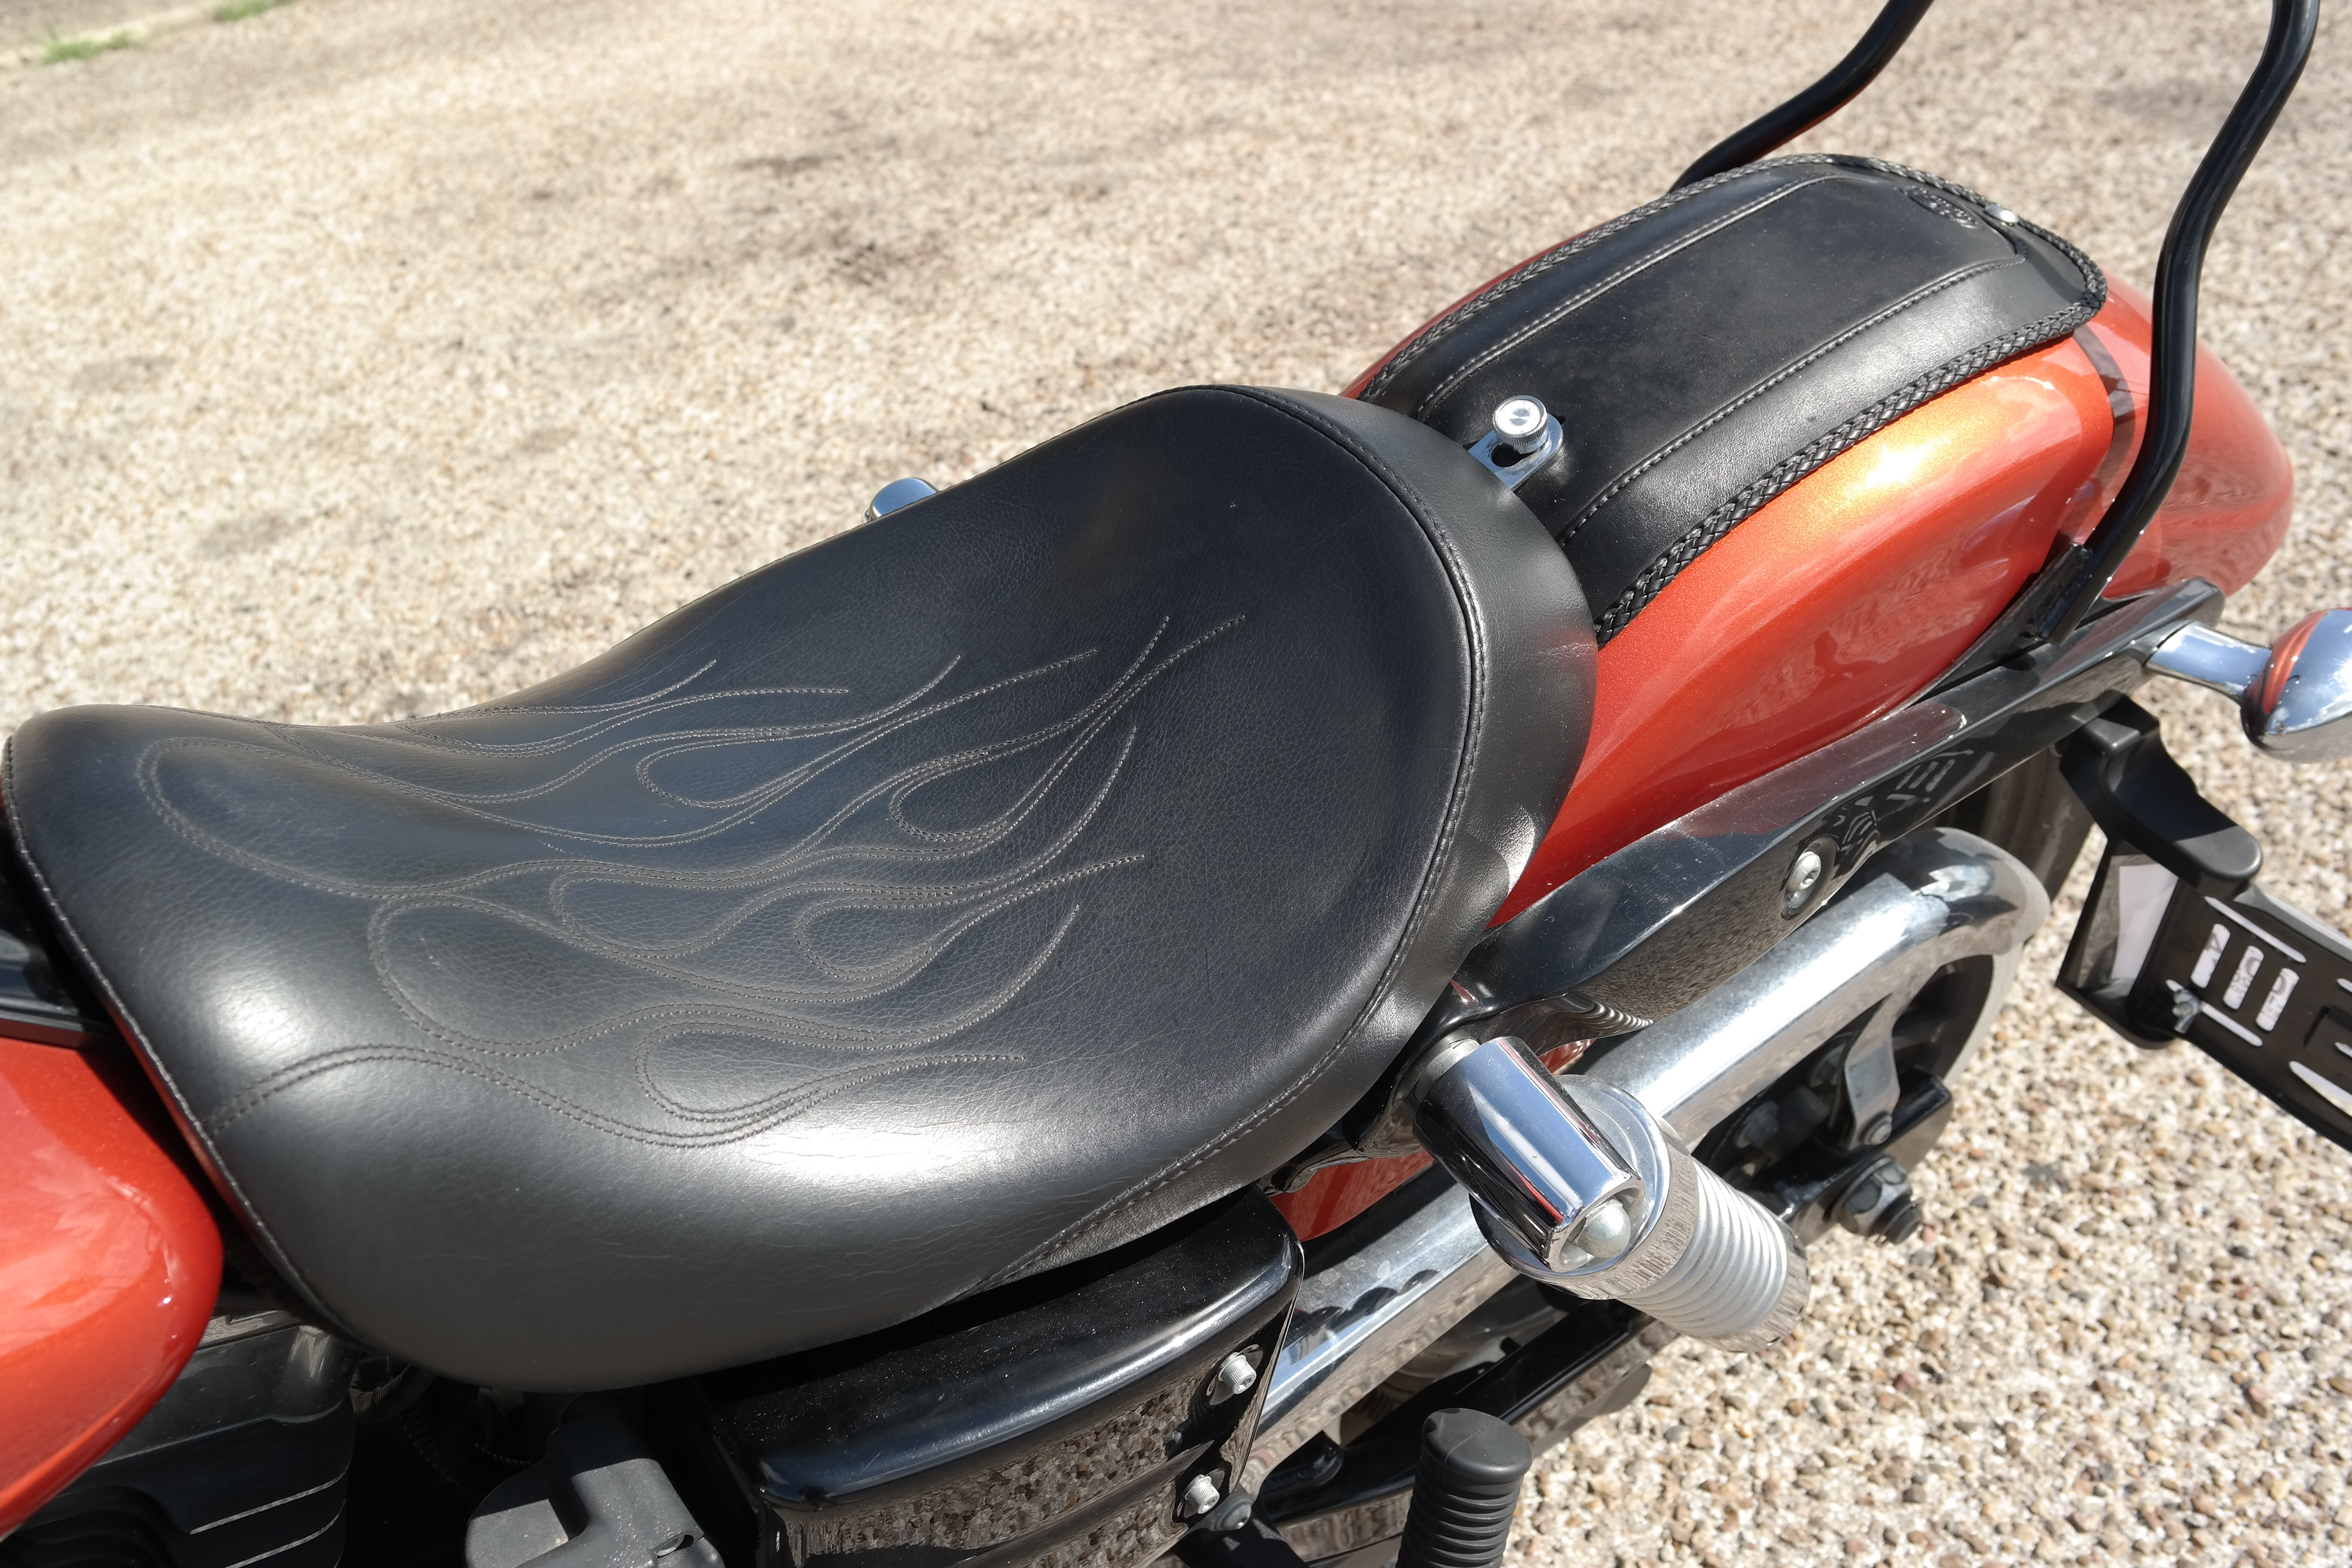 Motorcycles For Sale San Marcos Tx >> 2011 Harley-Davidson® FXDWG Dyna® Wide Glide® (Orange), San Marcos, Texas (736316) | ChopperExchange